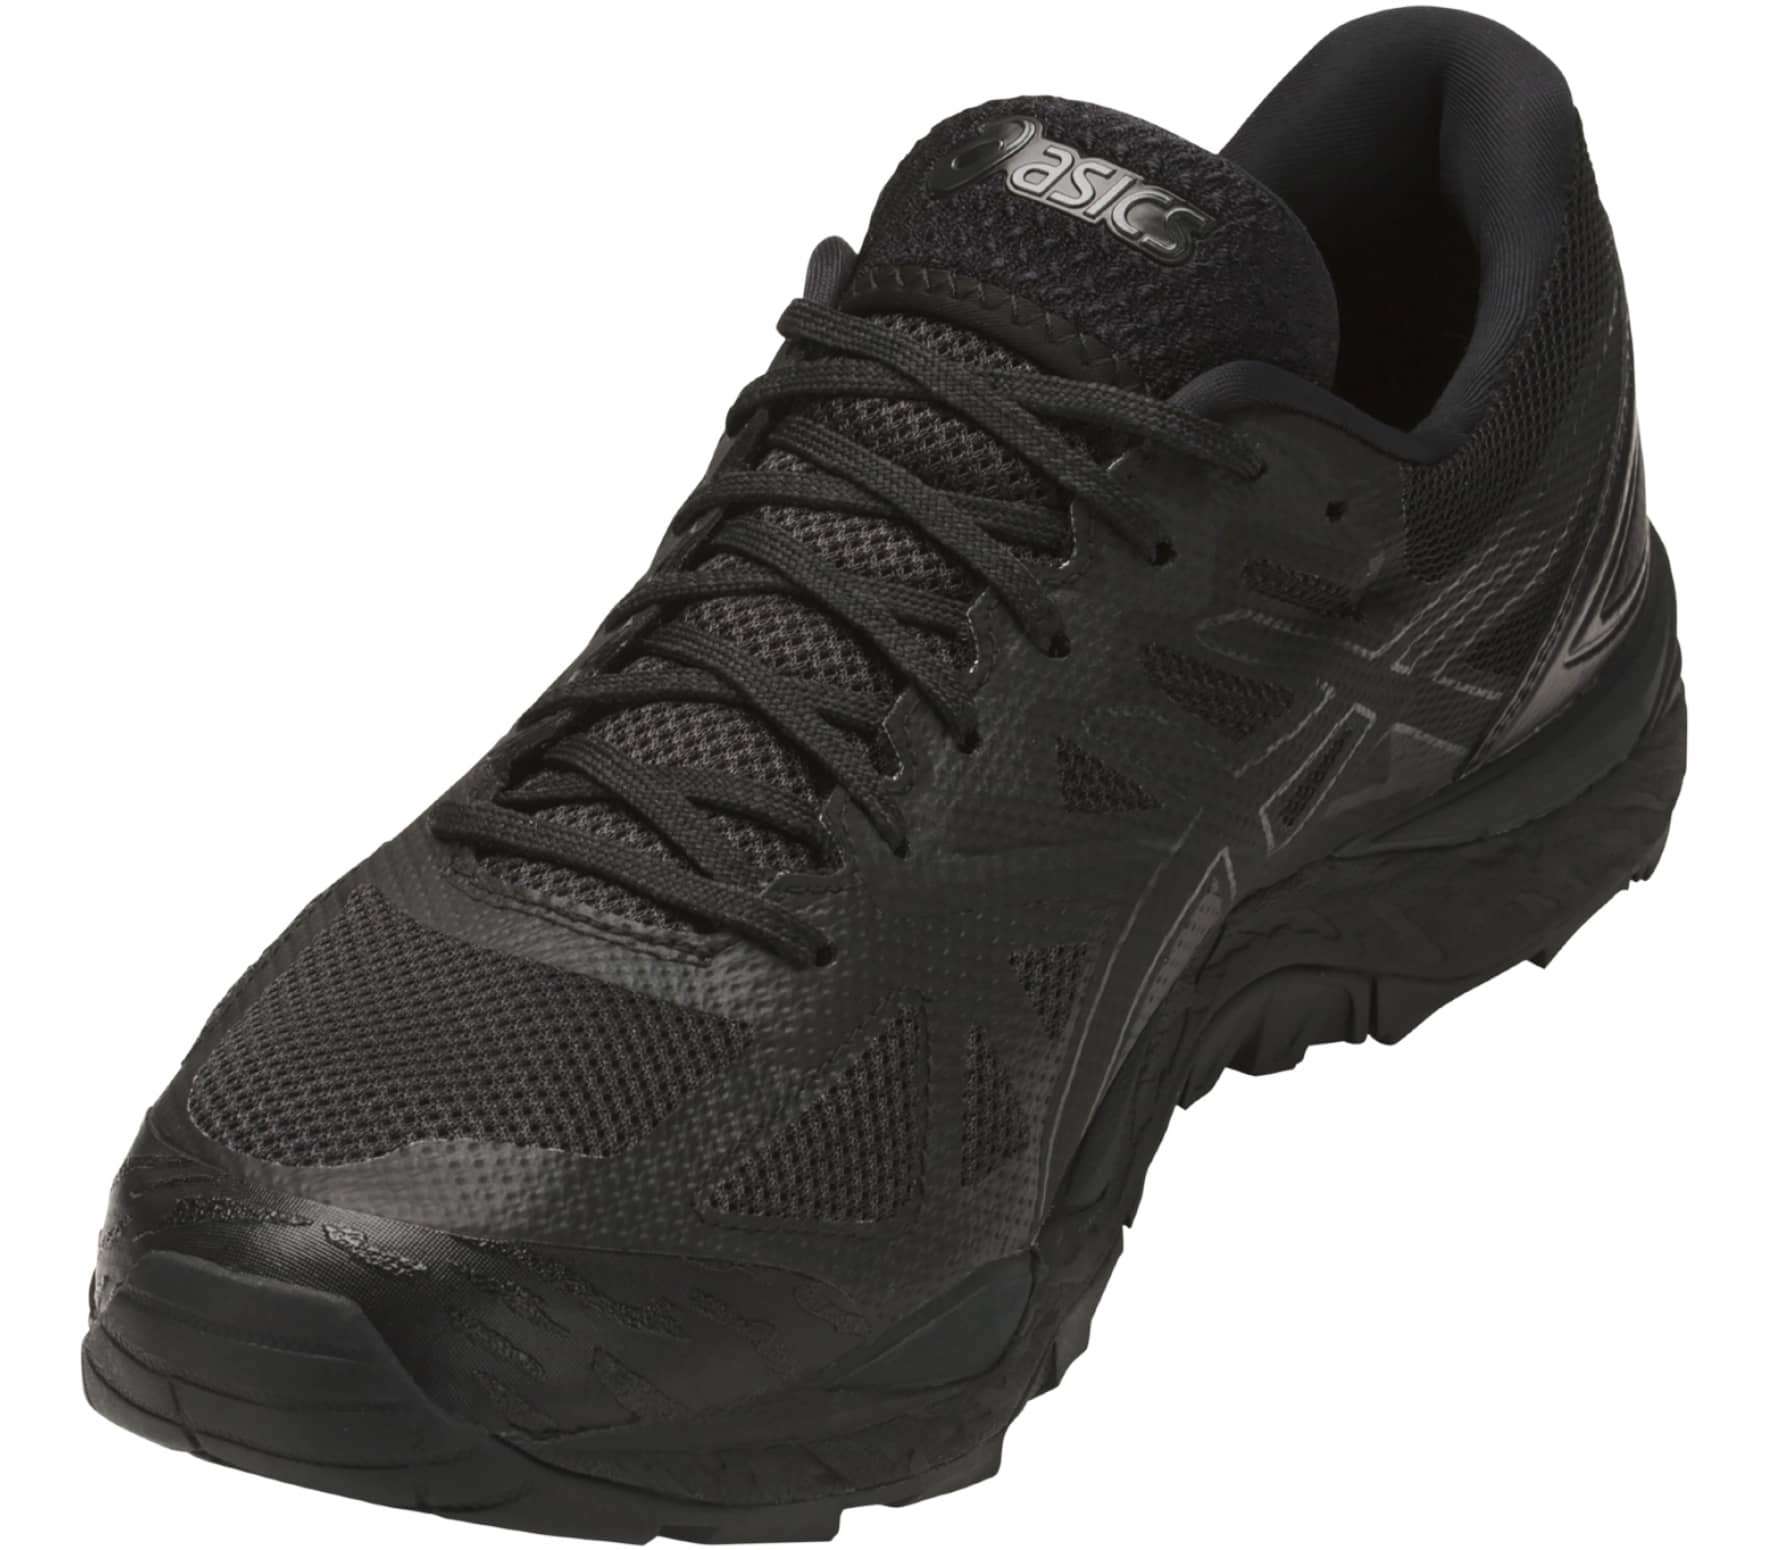 buy online 52c38 9ed06 Asics - Gel- FujiTrabuco 6 G-TX men s running shoes (black)